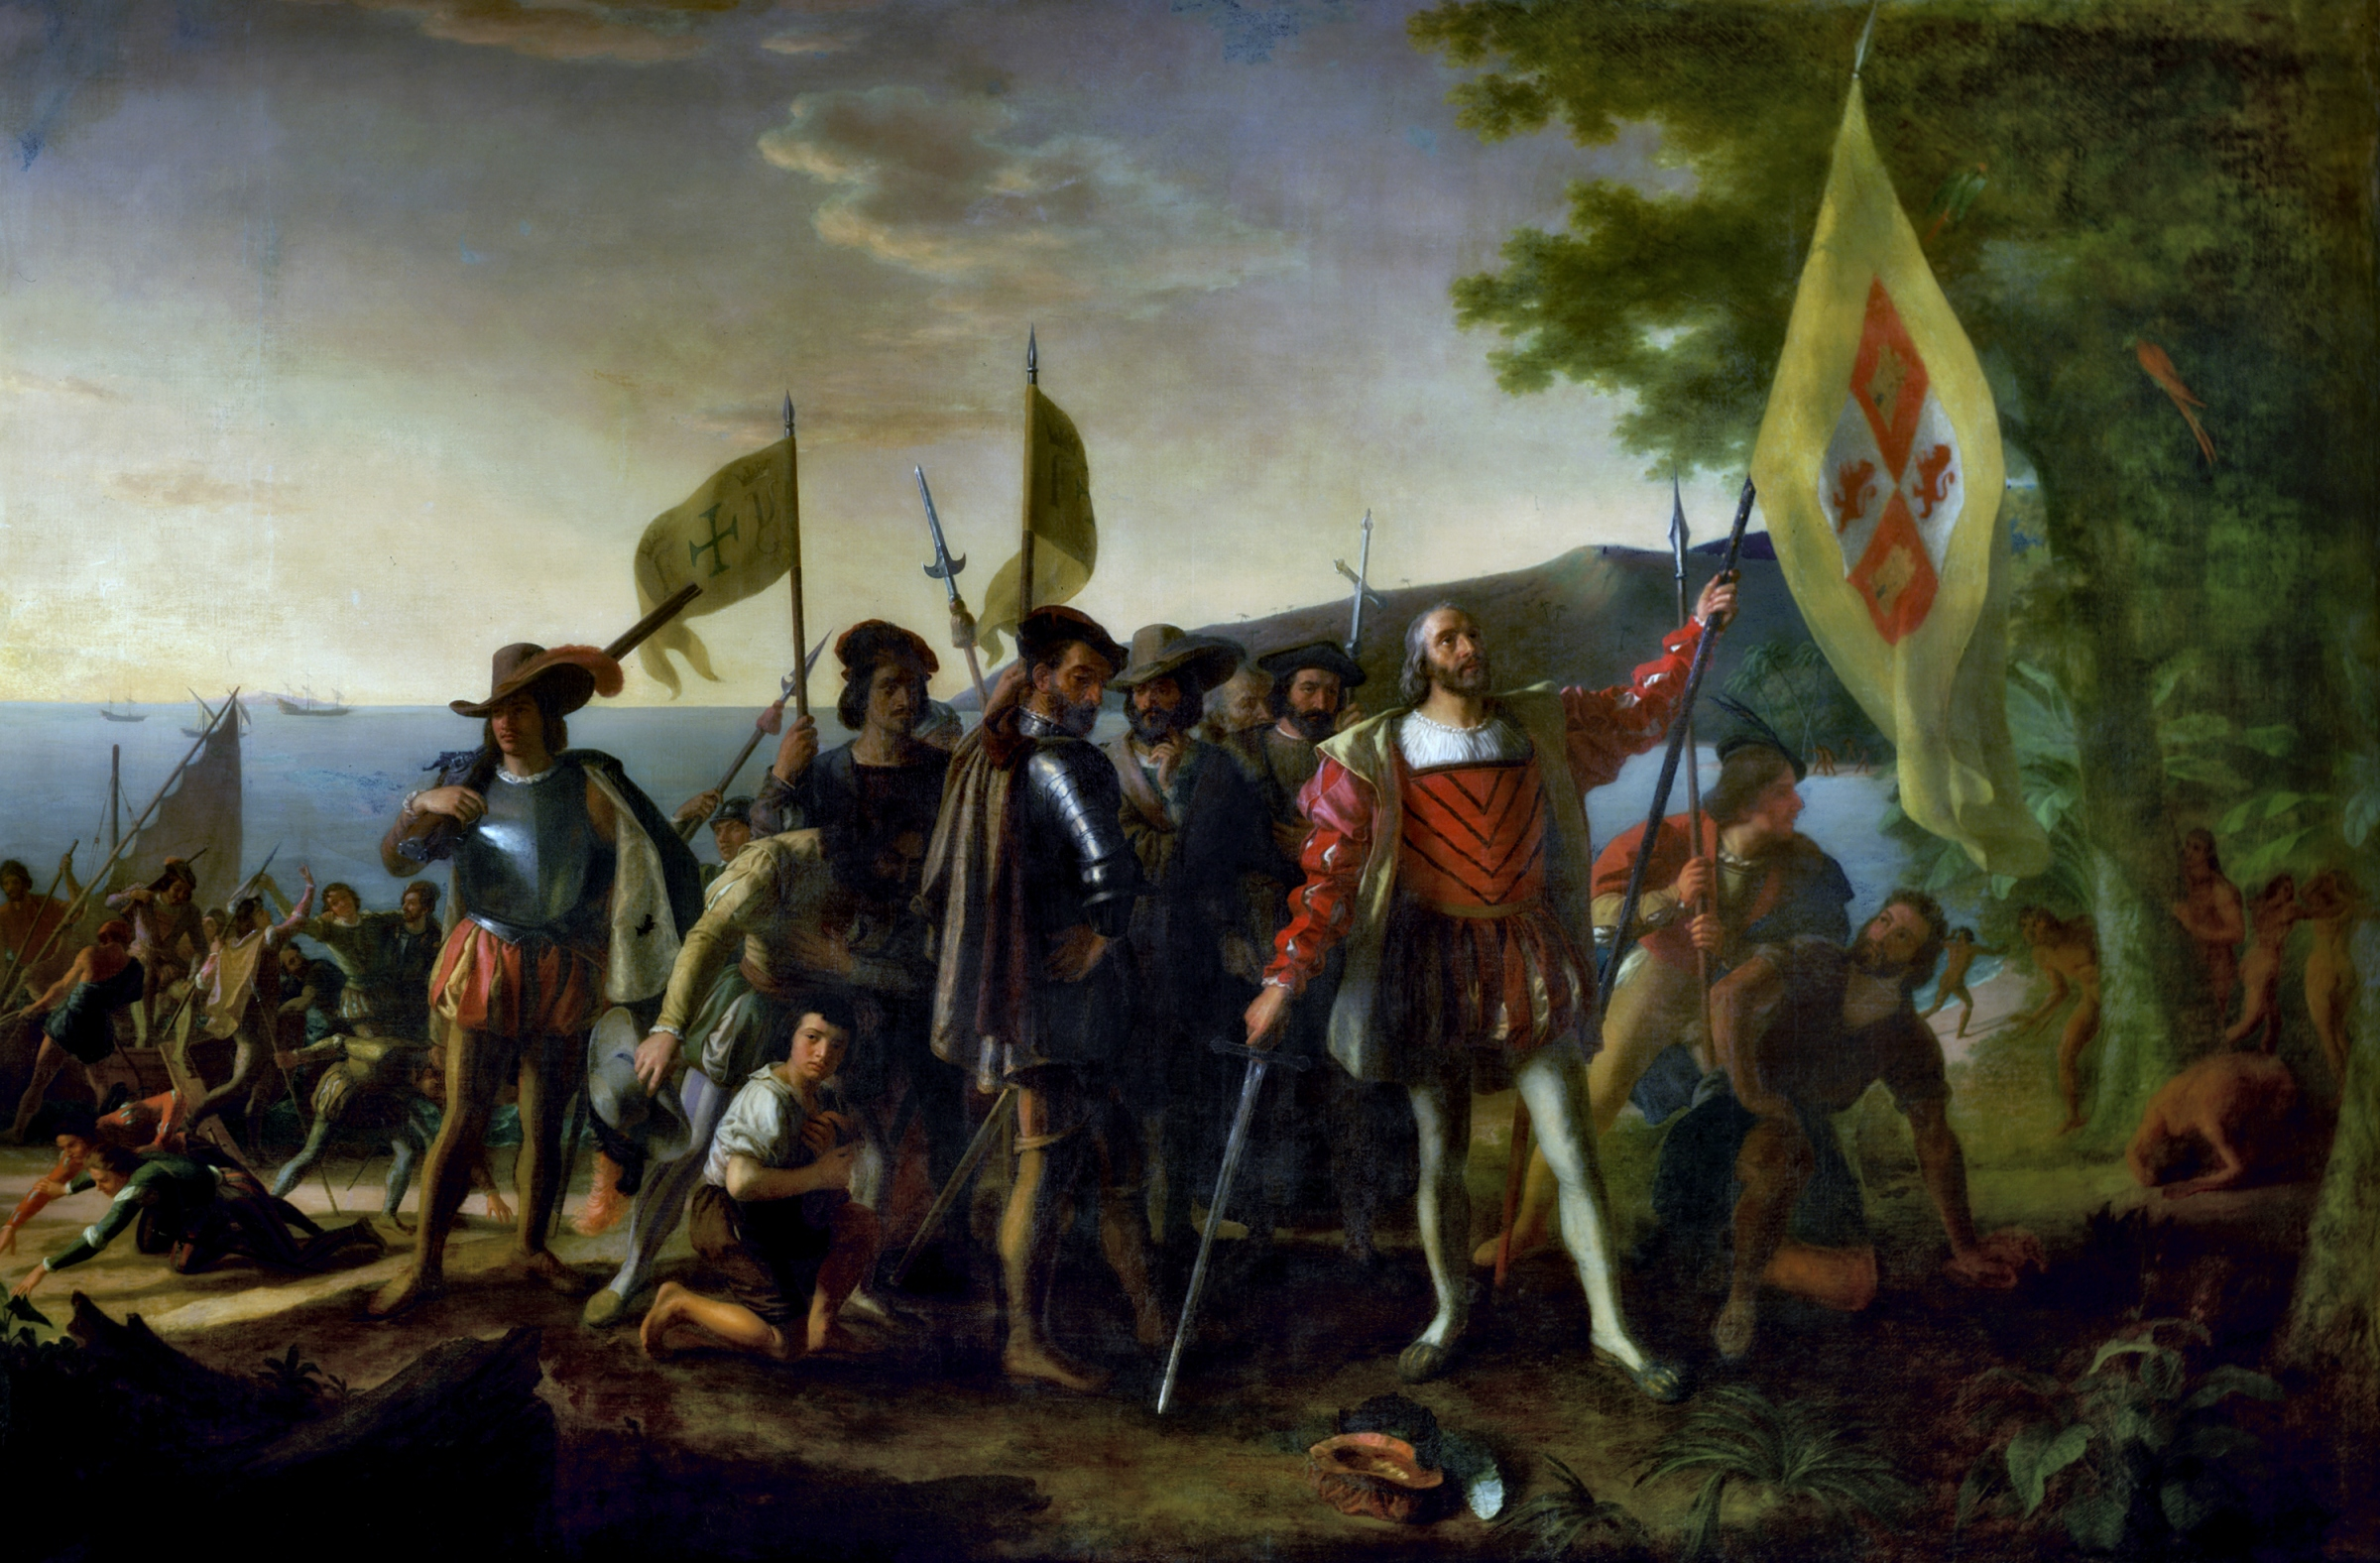 A painting of Columbus landing in the Americas. Conservatives are accidentally right about Columbus Day.